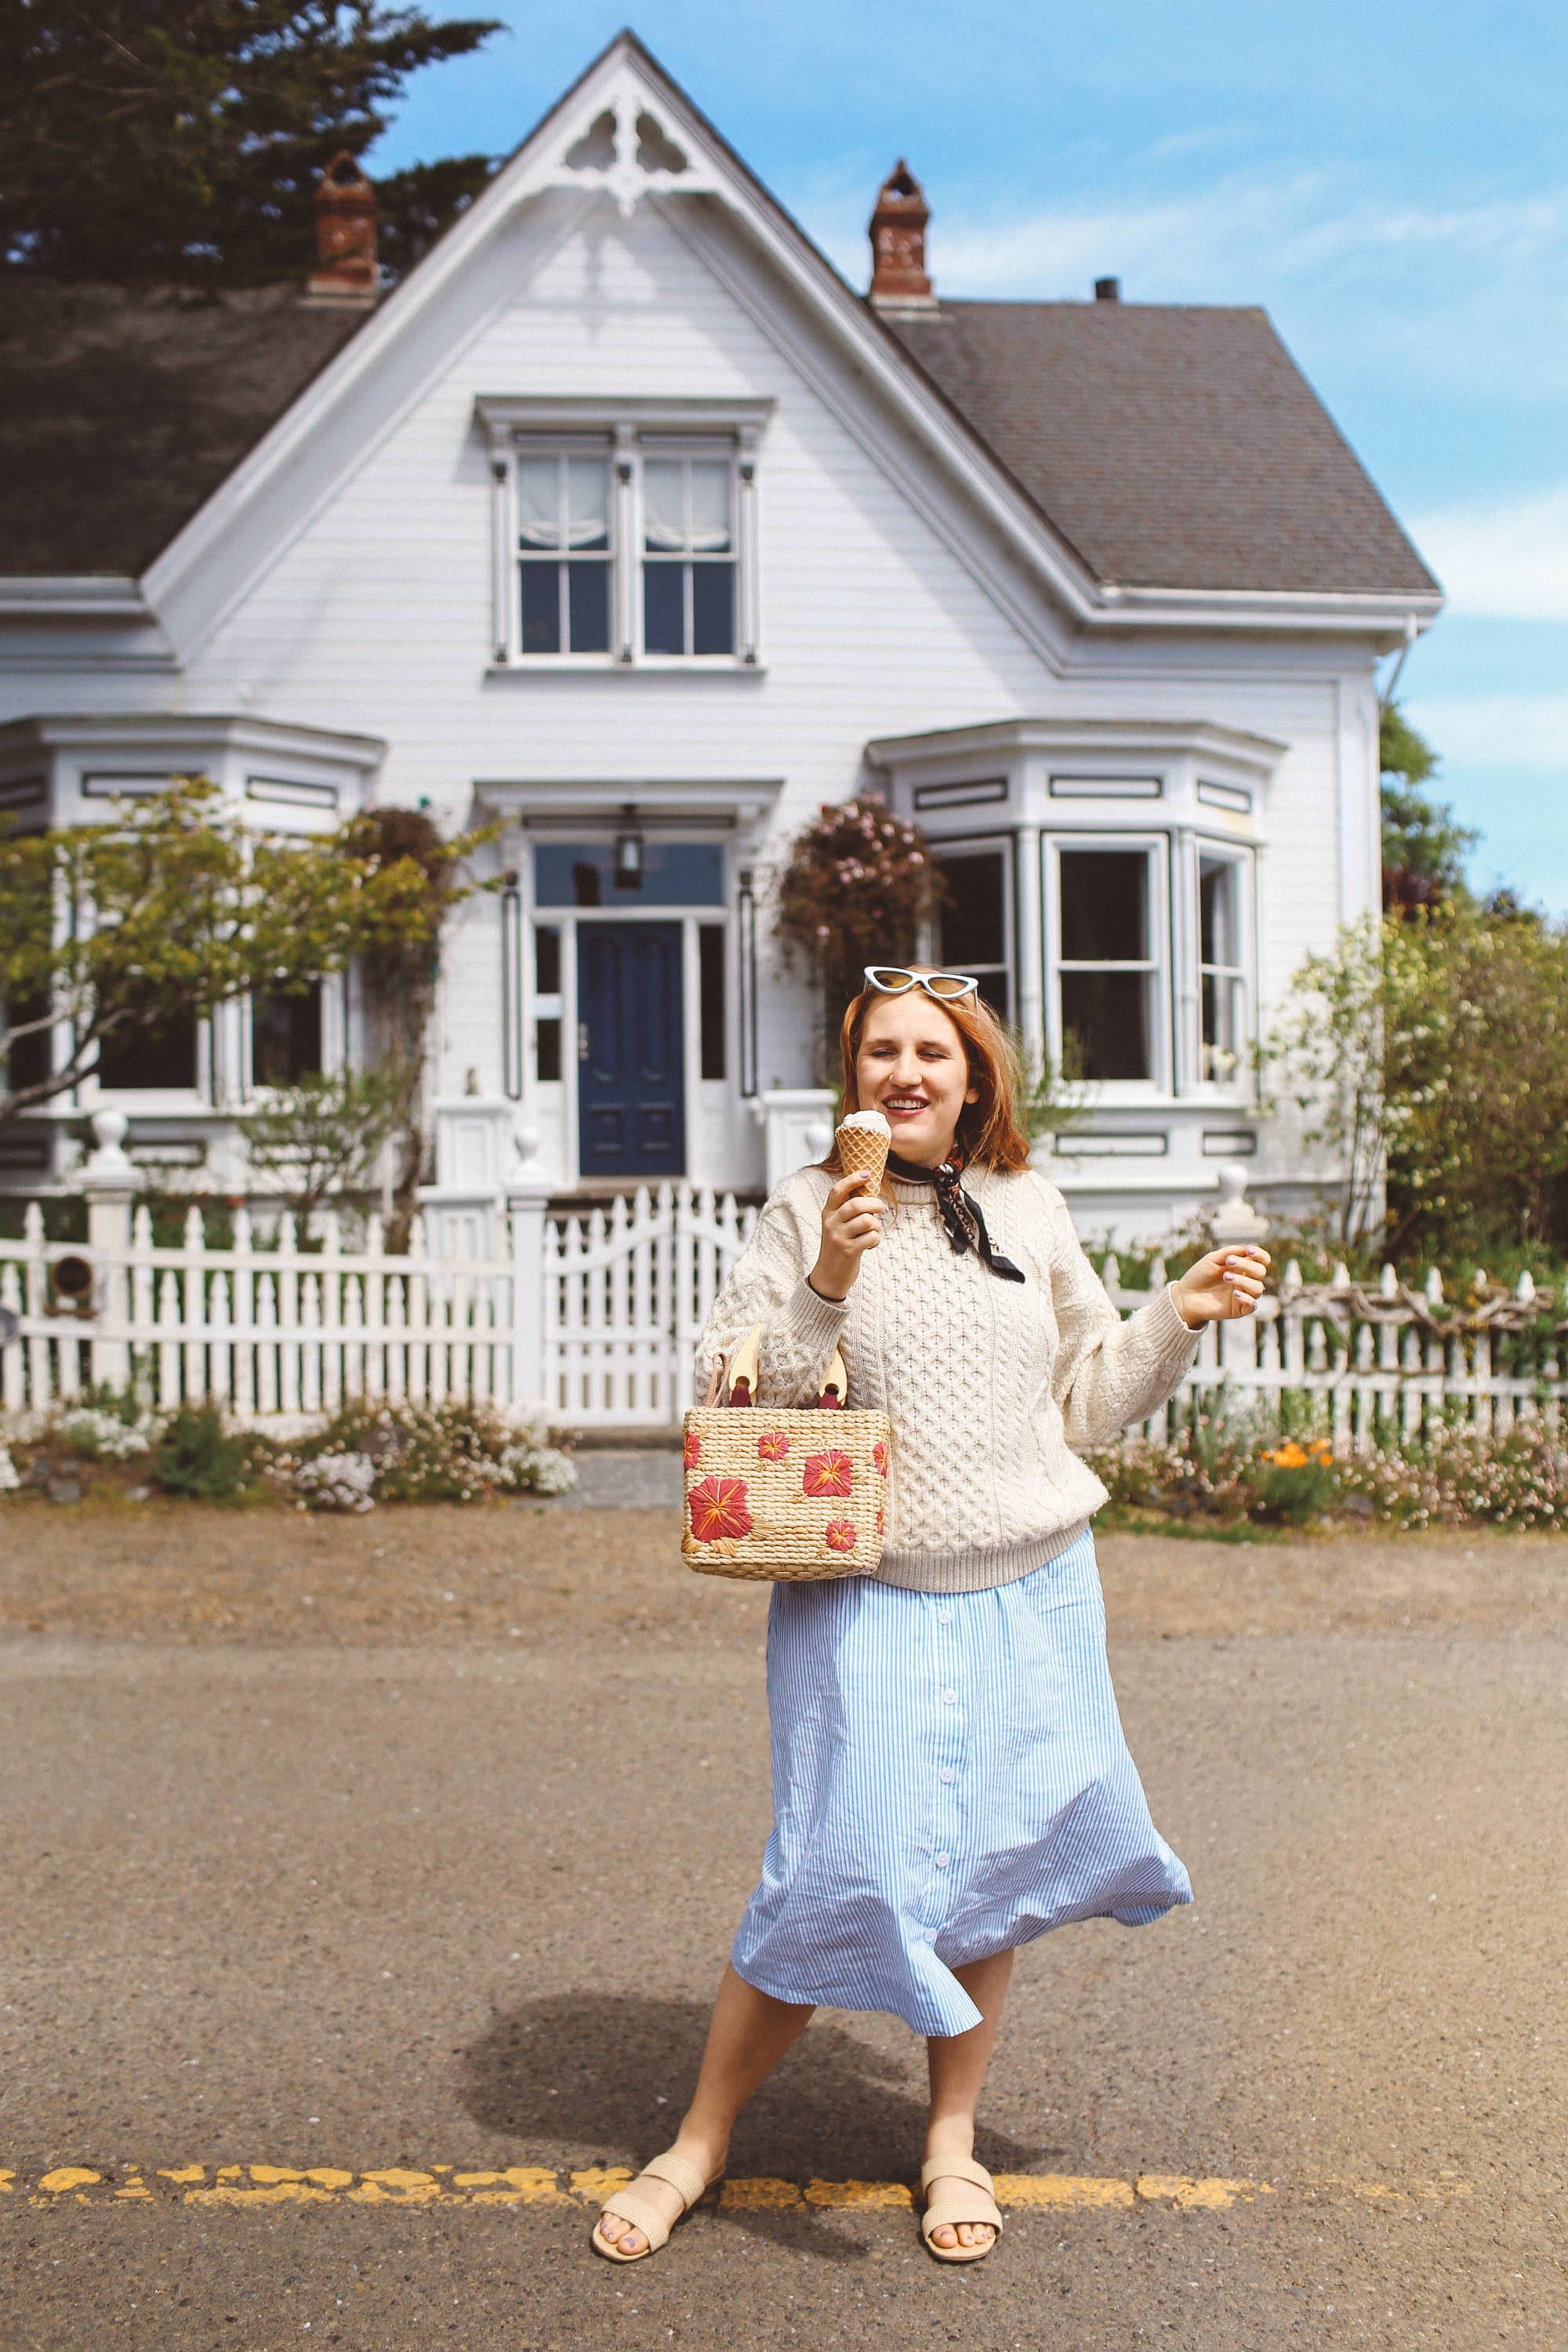 Woman in white wool sweater and flower straw bag eating ice cream